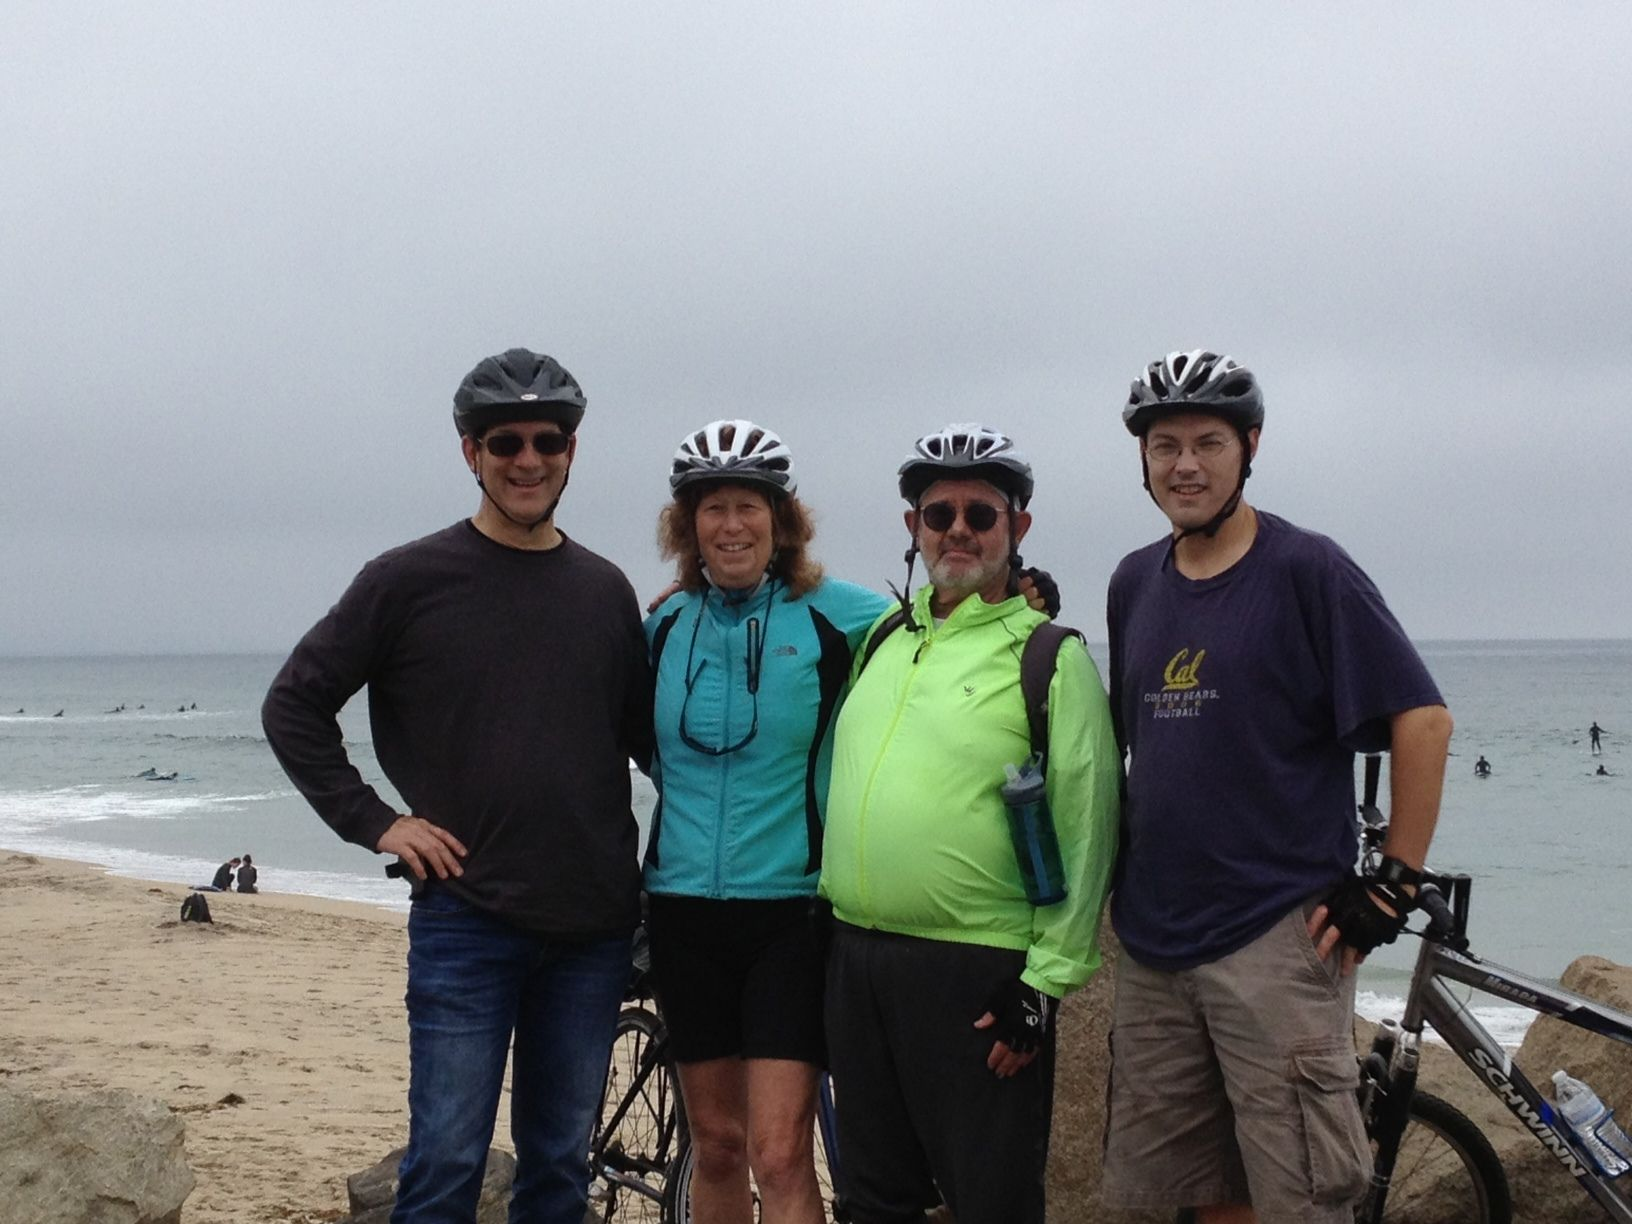 Southbay Cruisers Community Bicycle Group